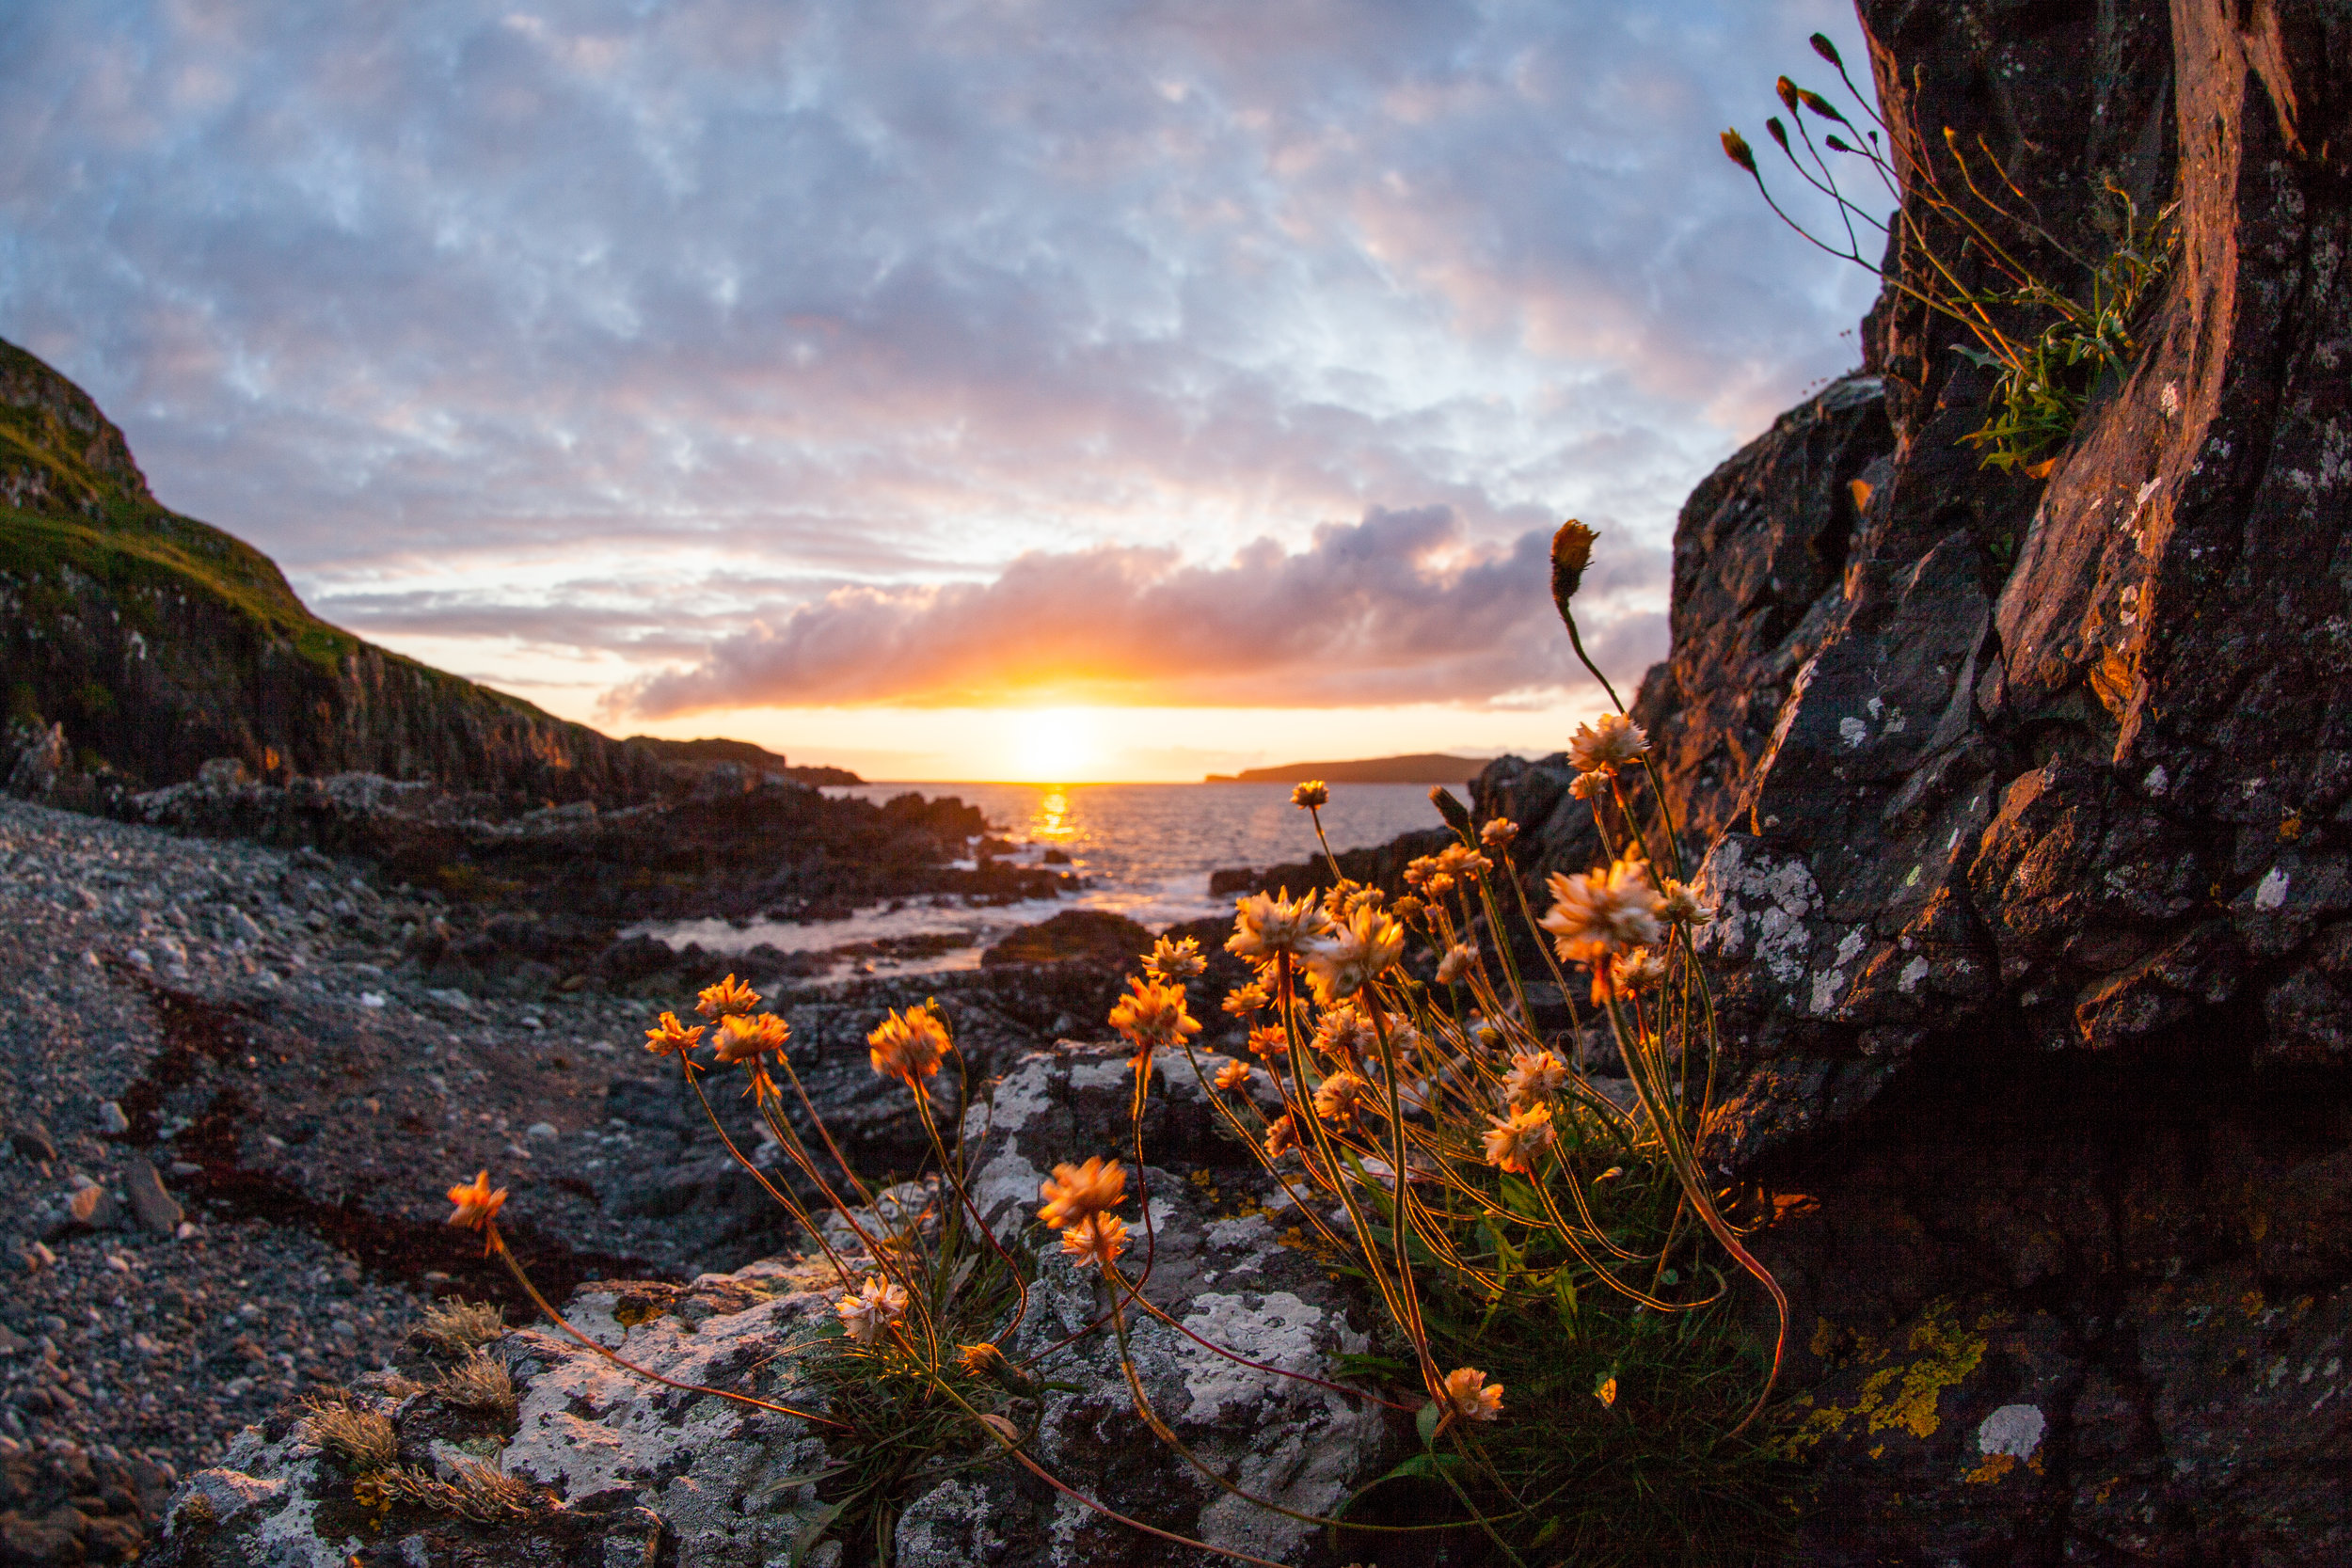 A beautiful fish eye style of the sun setting over a beach in Scotland.